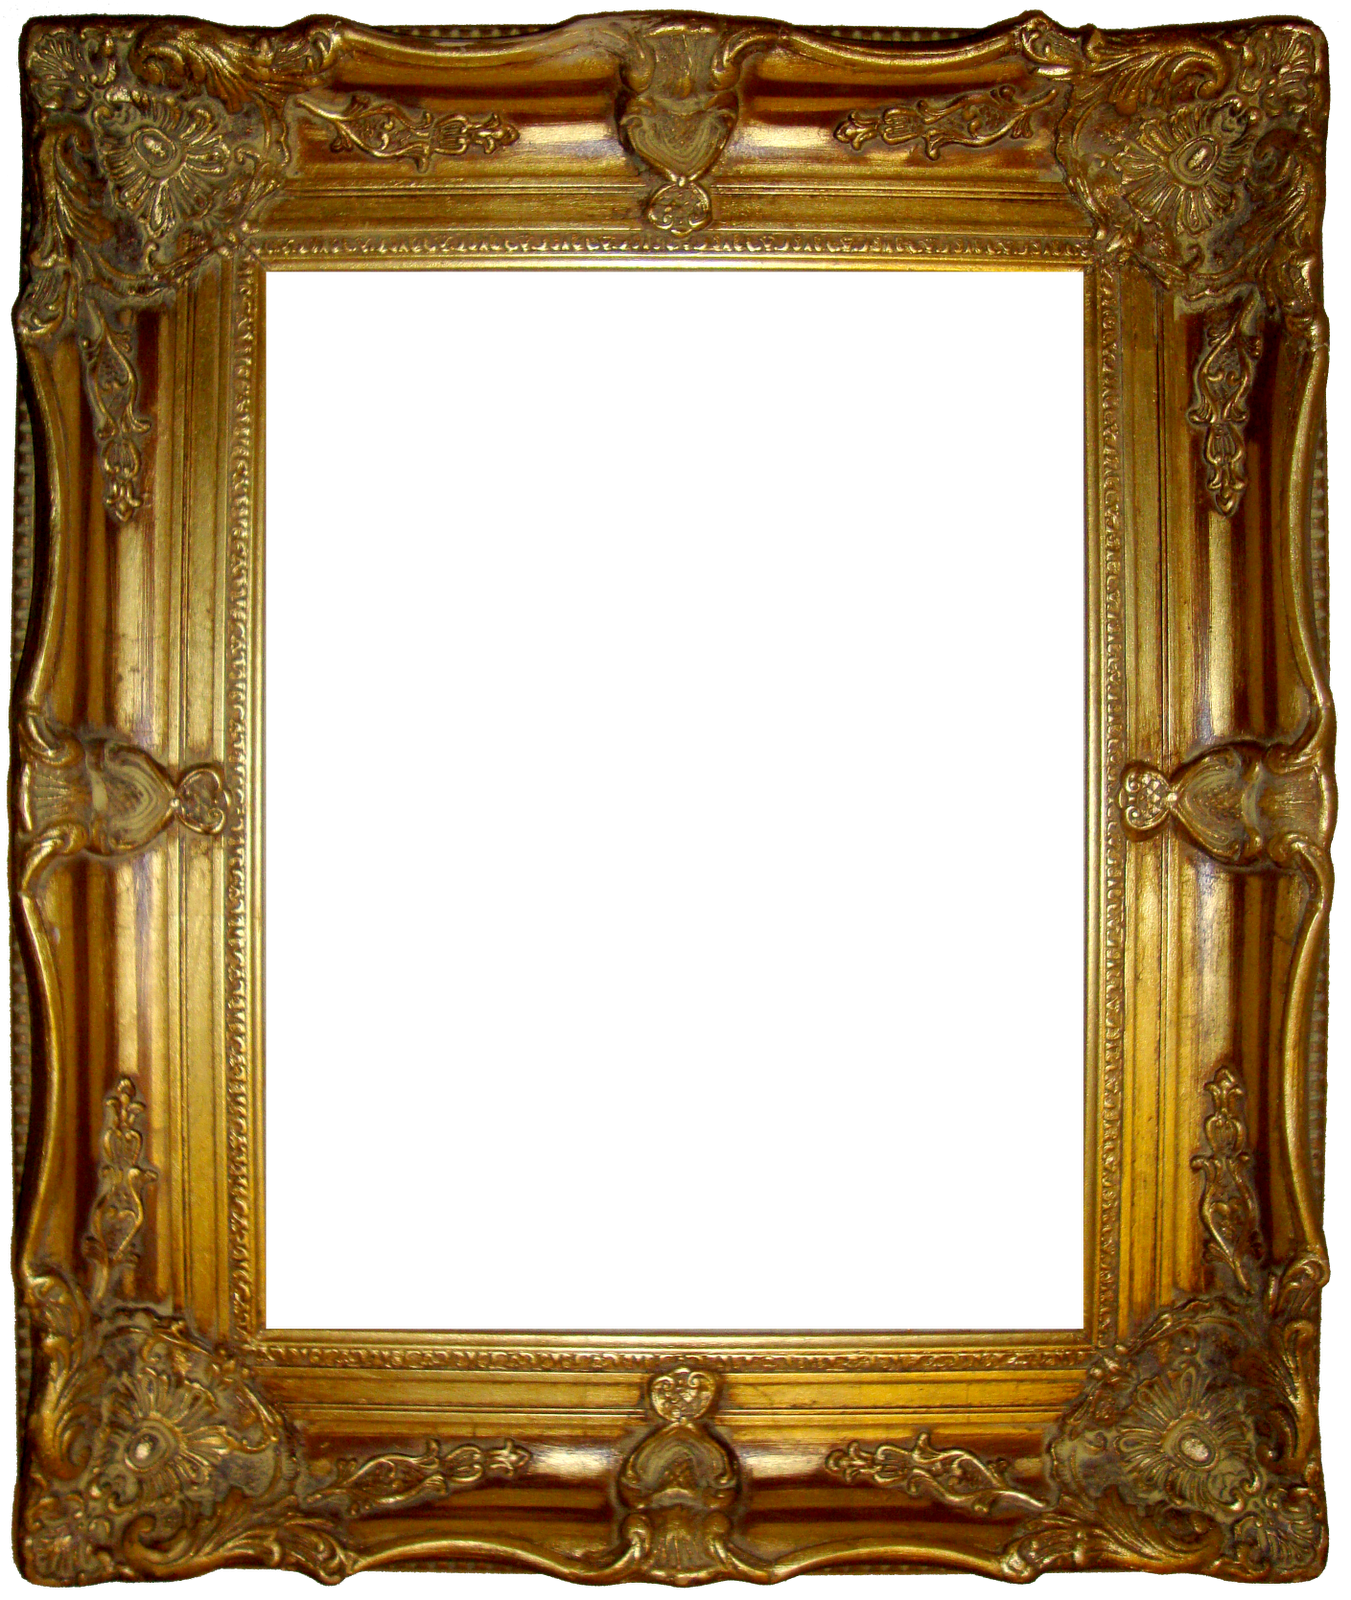 Popular 13 FREE Digital scrapbooking Antique ornate Photo Frames  GZ38